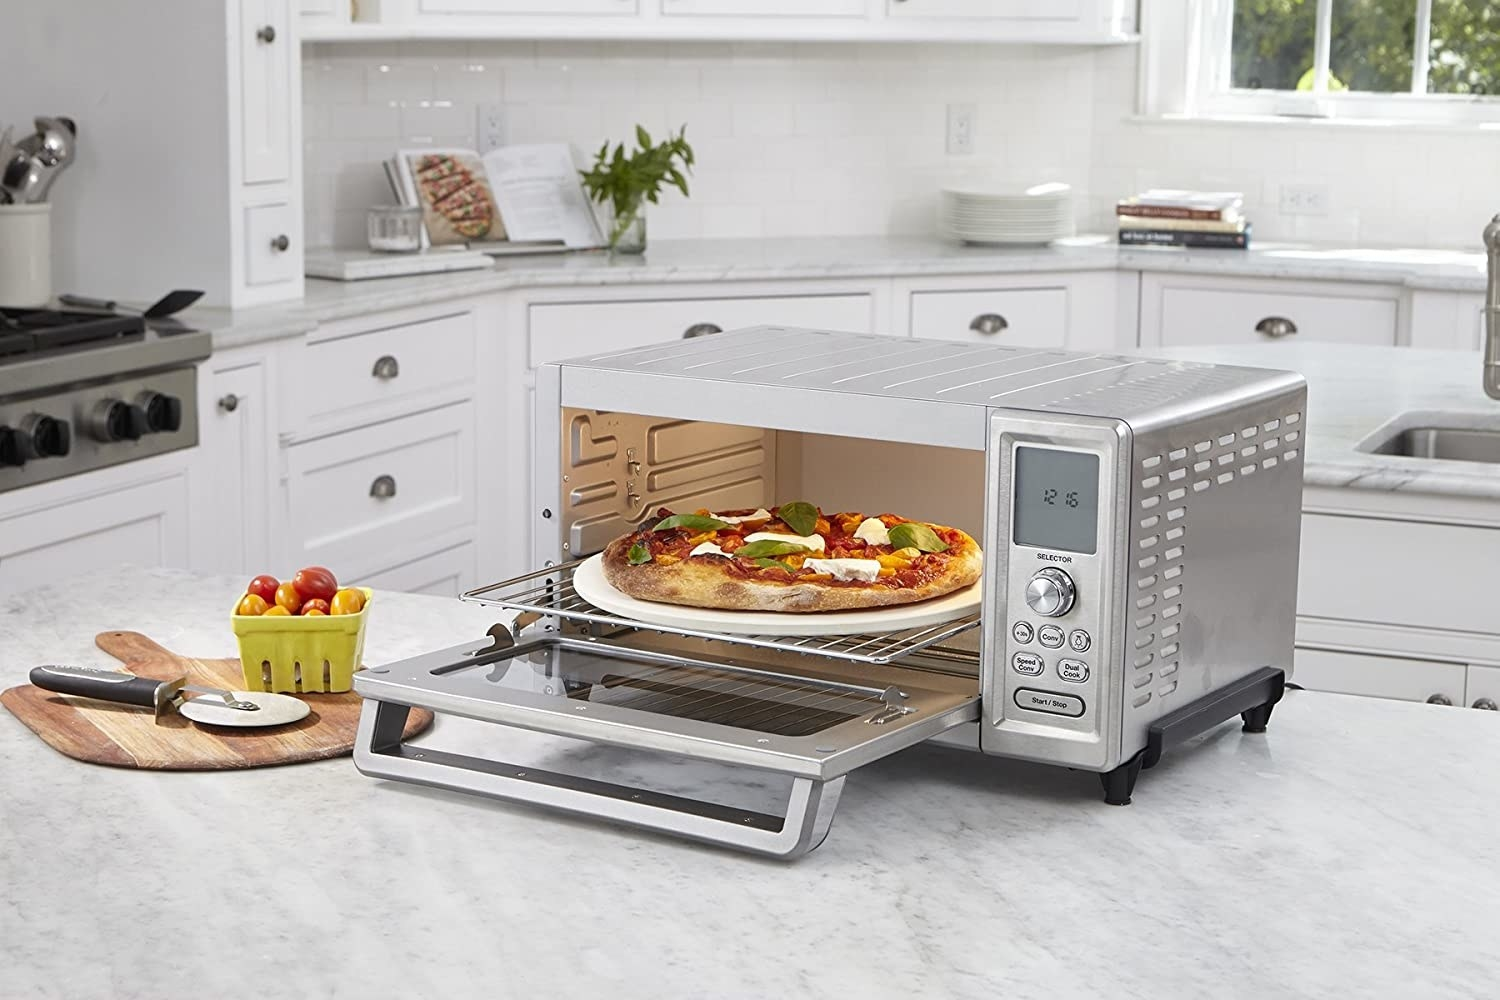 An open toaster with its door open displaying a personal pizza baked to perfection